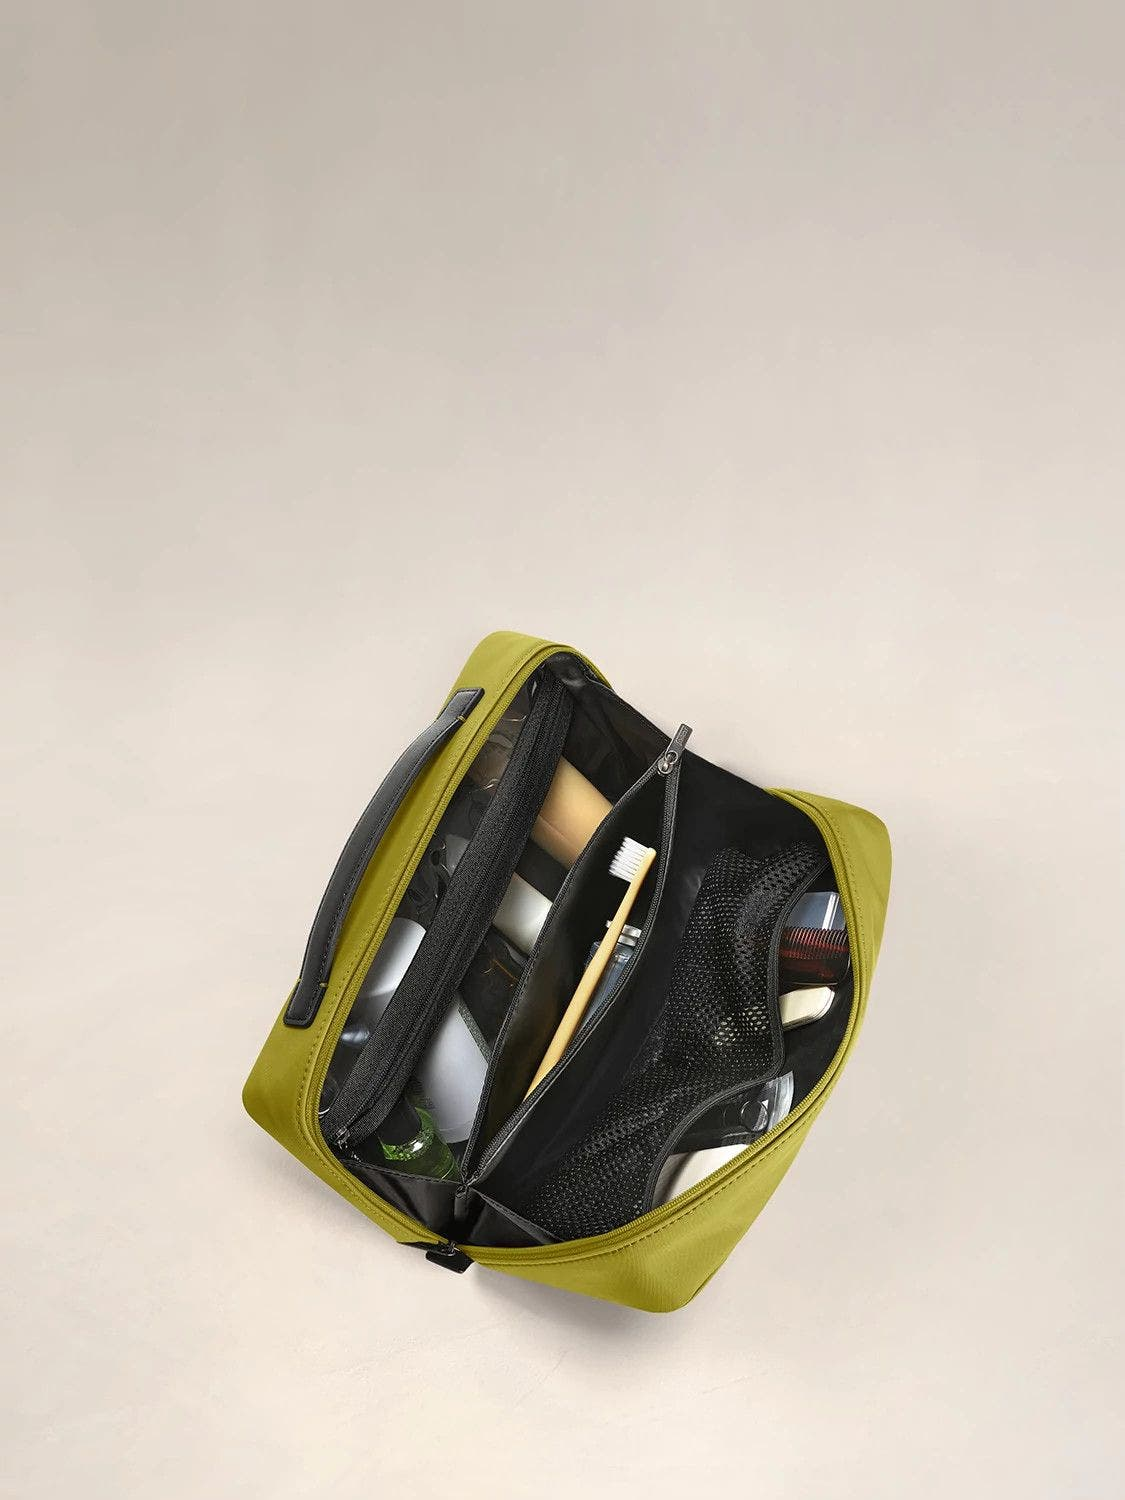 Inside view of a travel toiletry kit in pistachio green with black interior pockets full of travel toiletries.